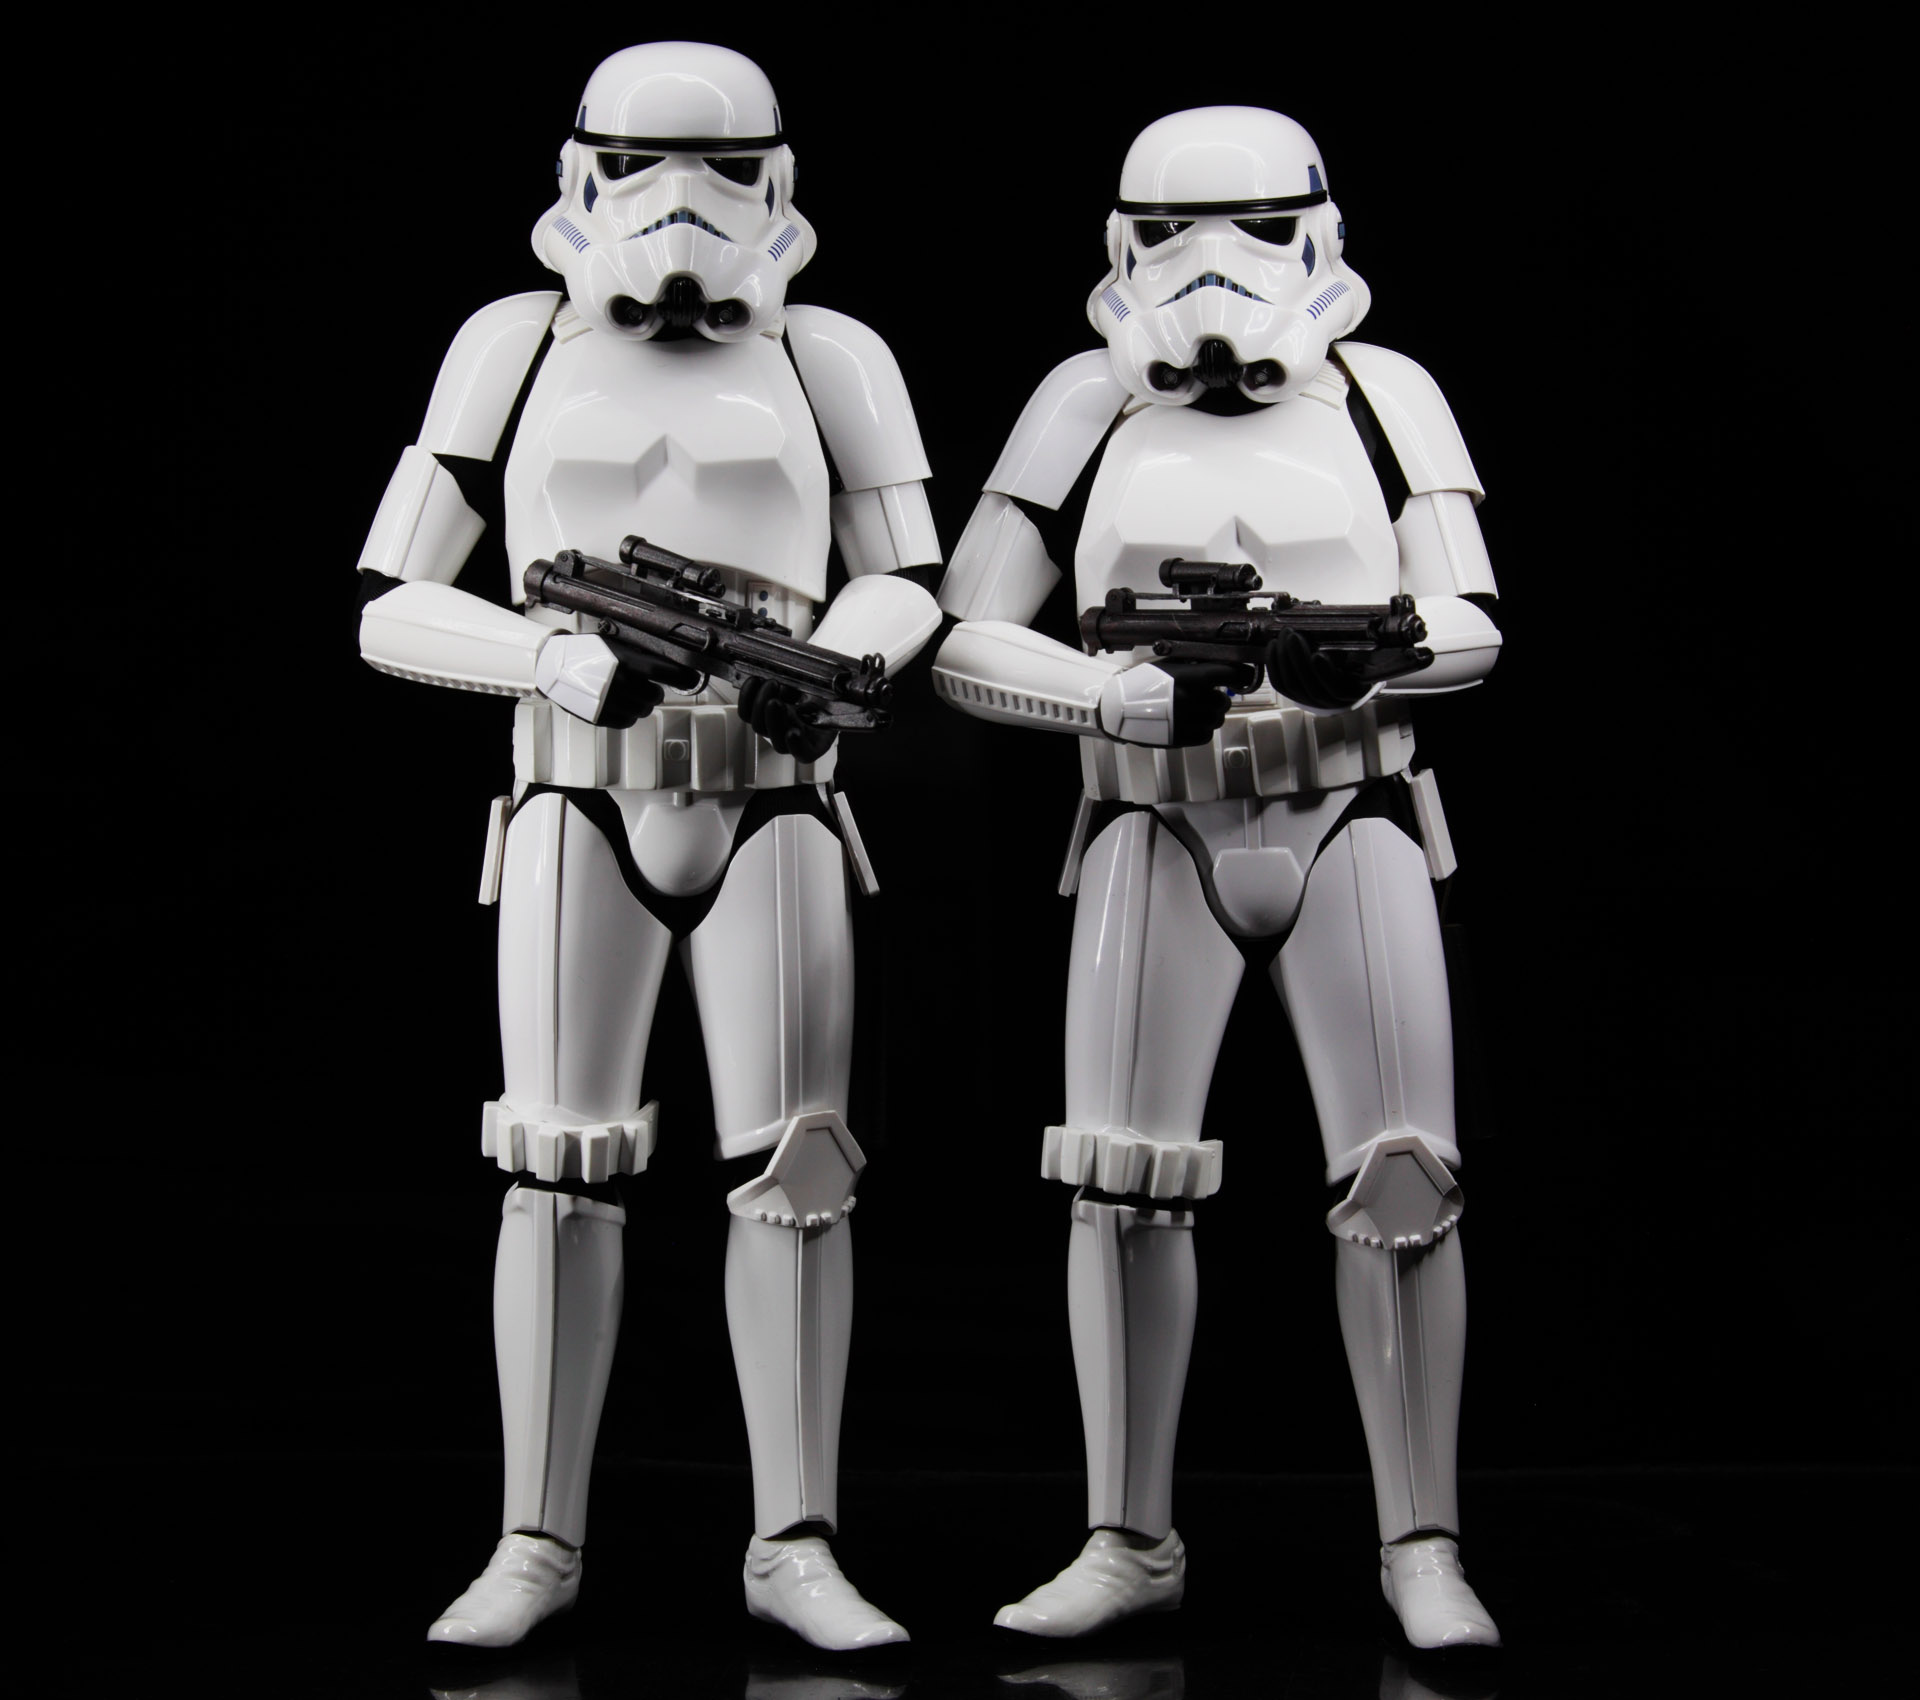 hottoys-star-wars-episode-4-a-new-hope-stormtroopers-set-picture02